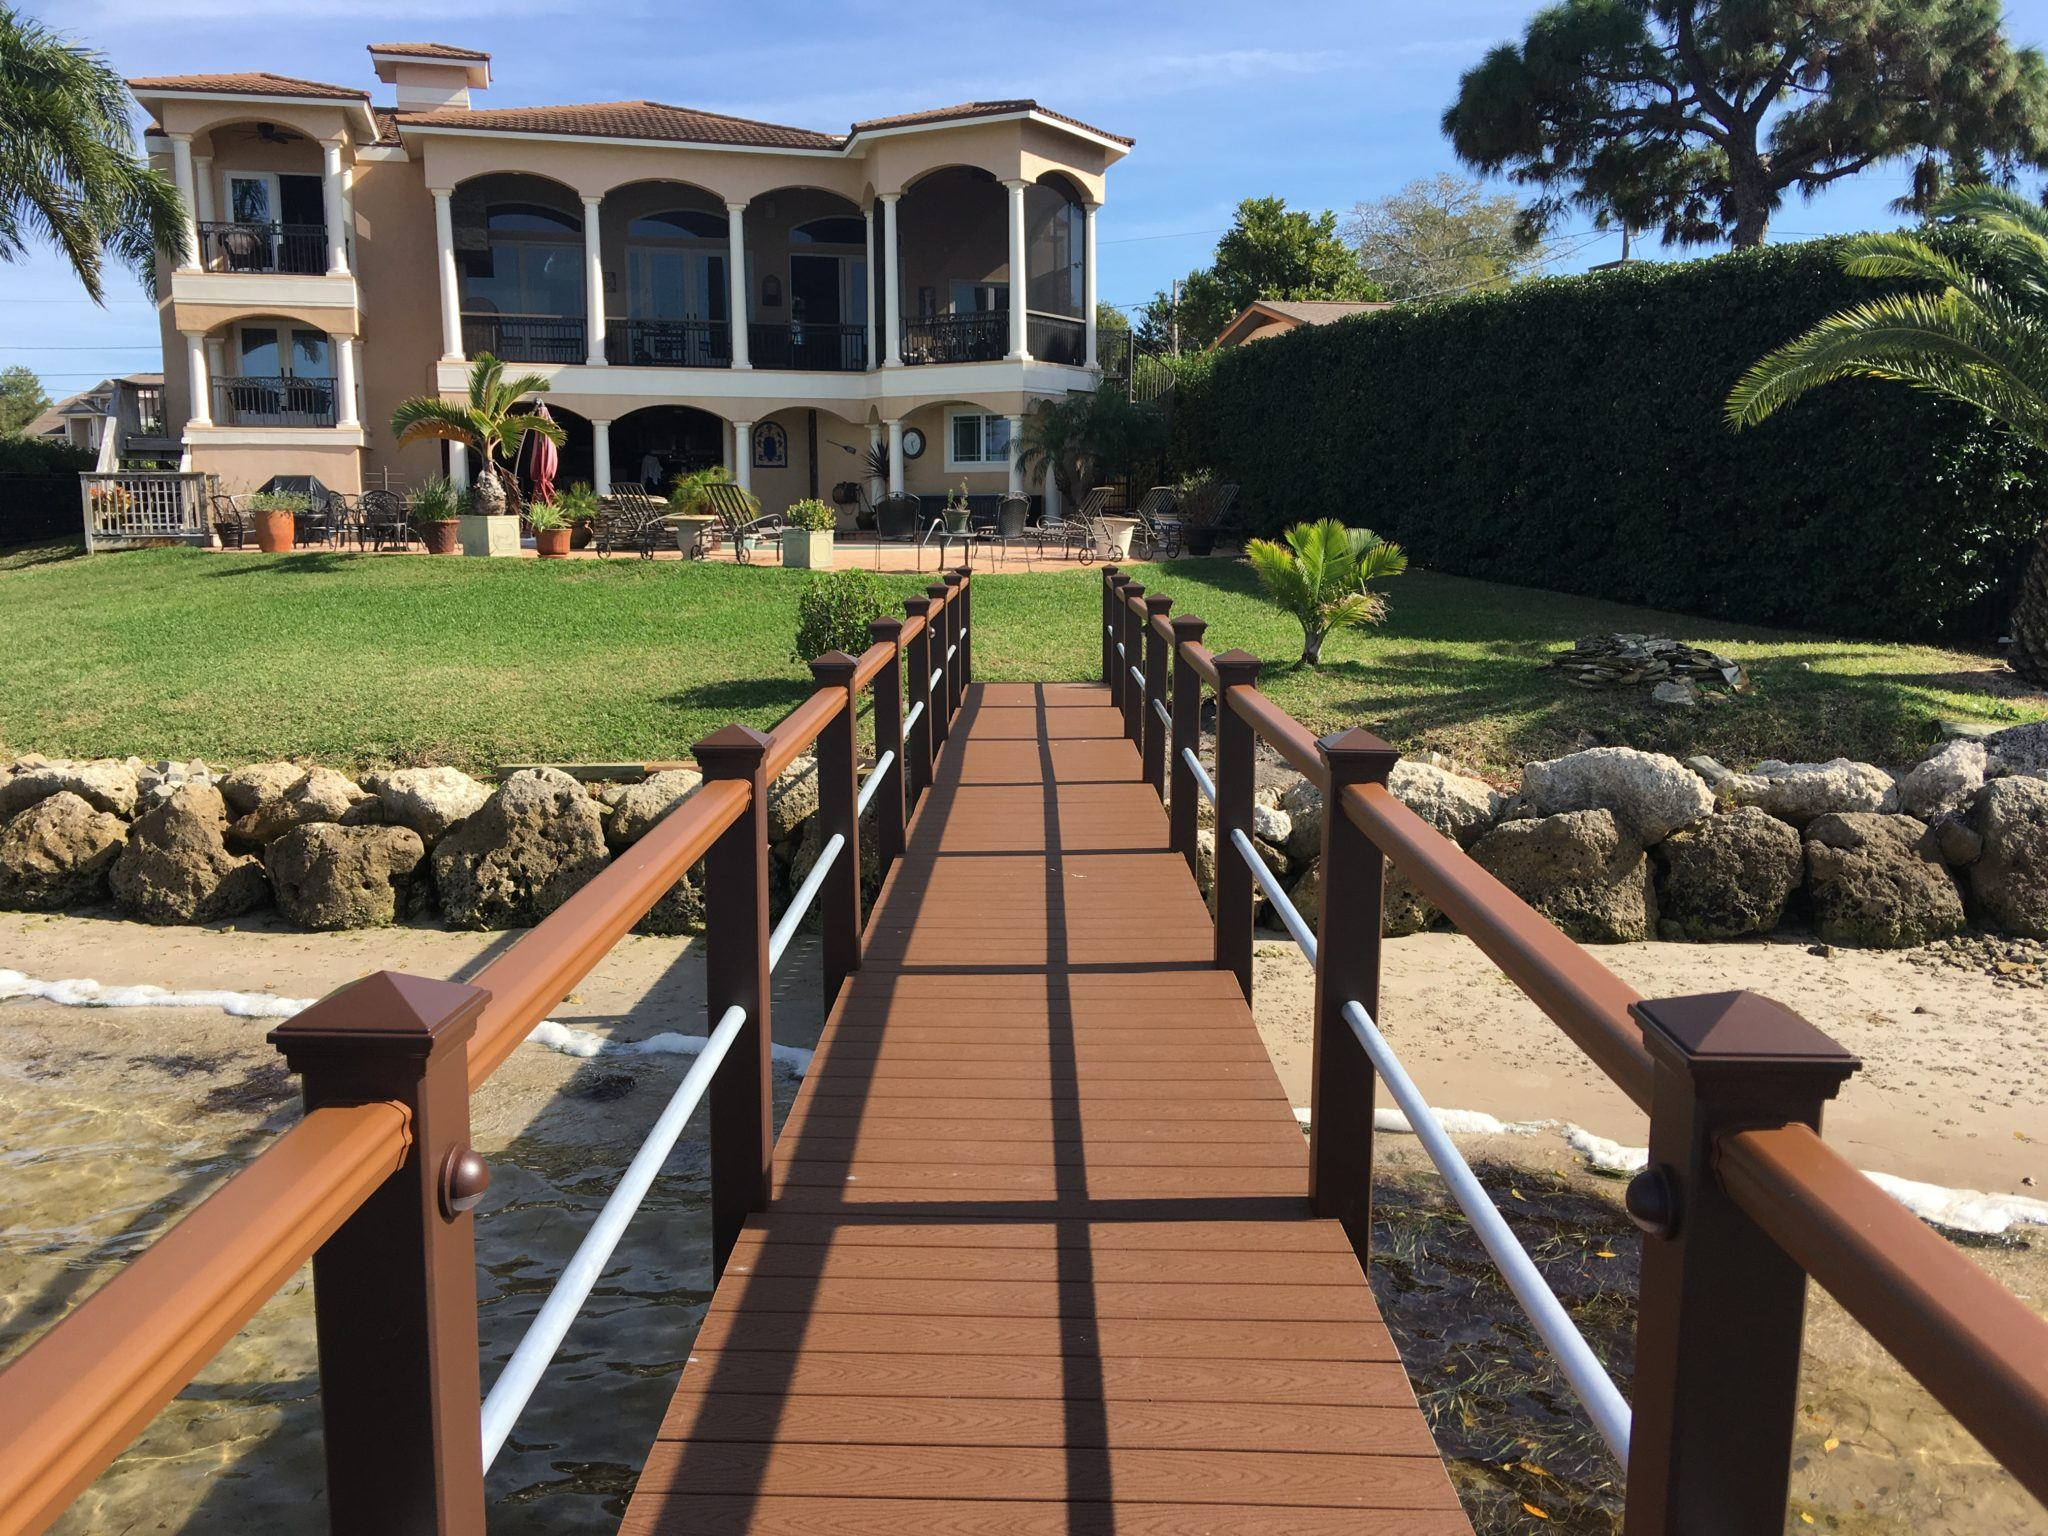 A dock with Trex aluminum handrail running down both sides with Trex post rail LED lights